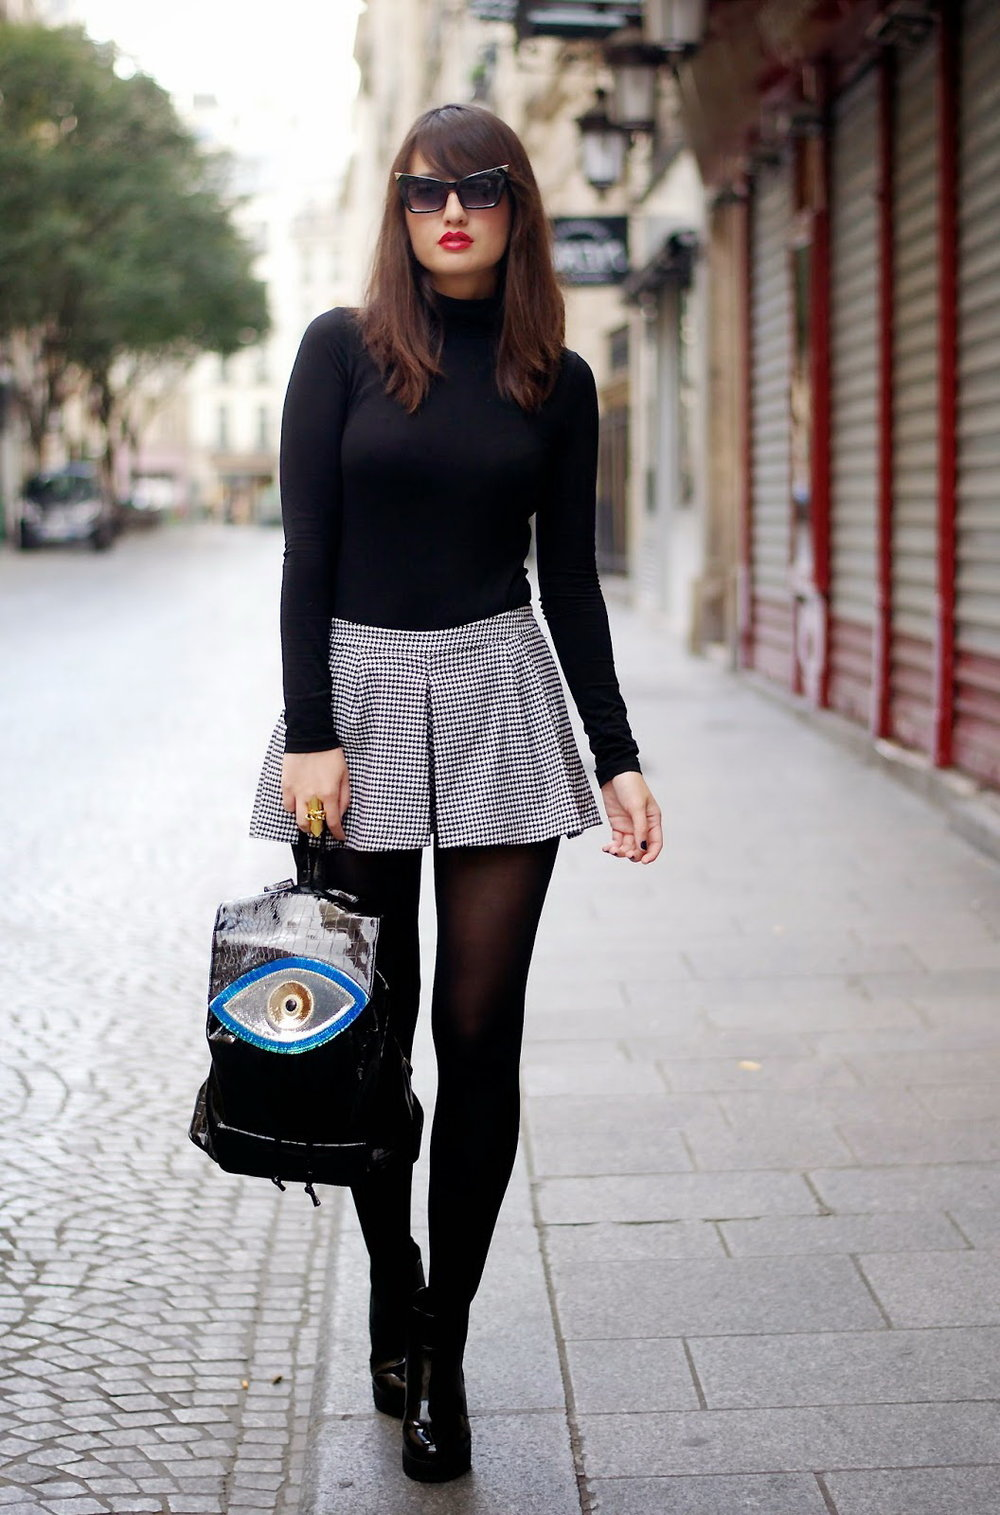 4.-Sweater-With-Chic-Shorts-And-Cute-Sunglasses.jpg